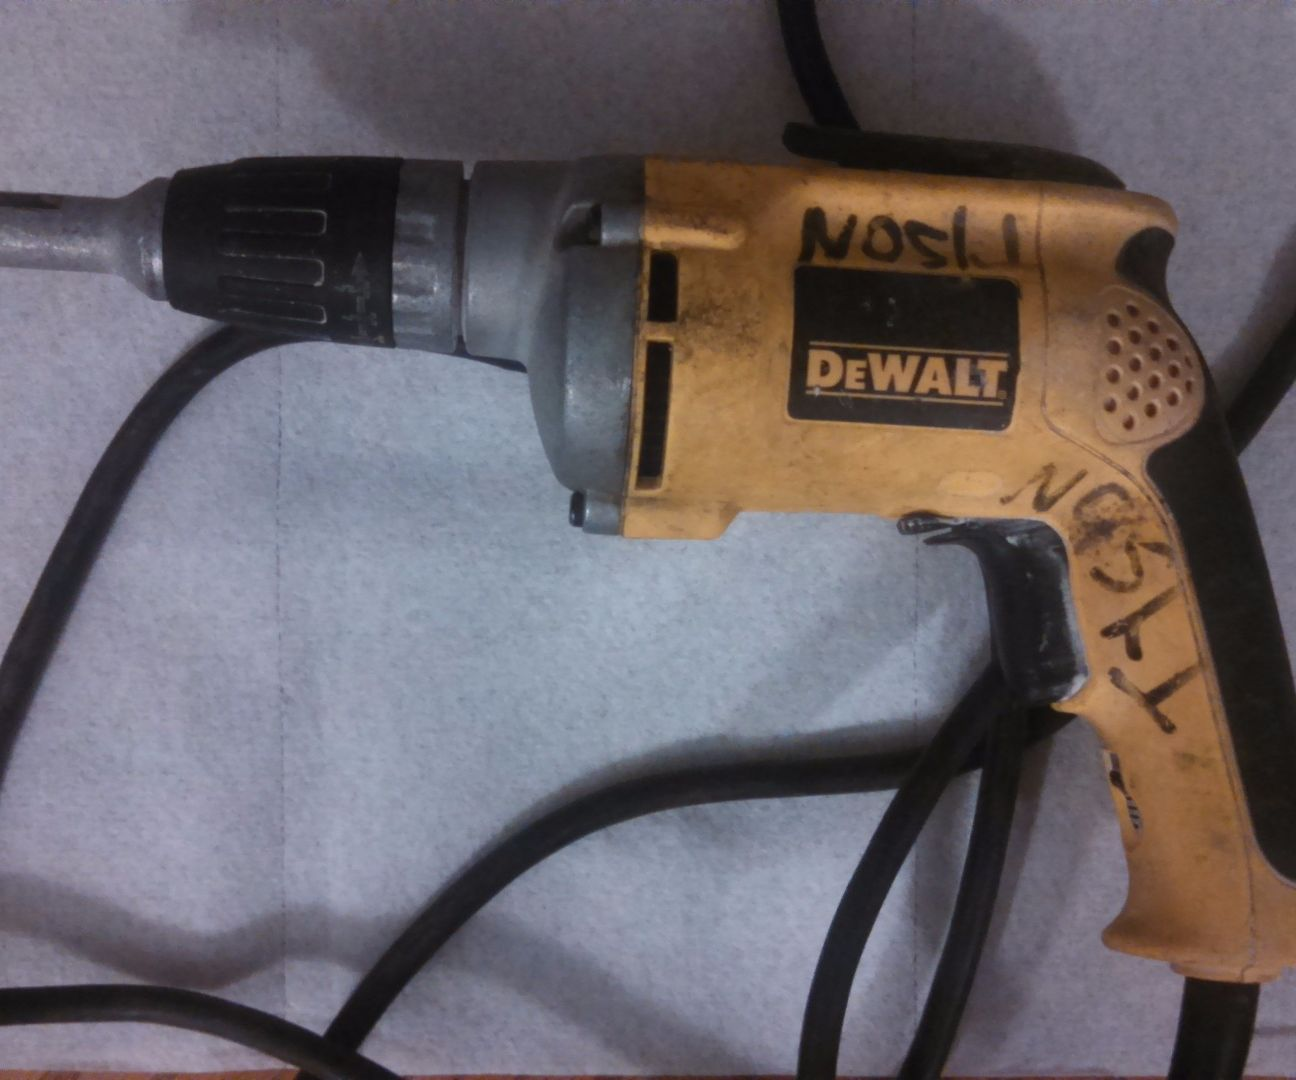 dewalt drywall scrugun repair 6 steps with pictures de walt power tool wiring diagrams [ 1296 x 1080 Pixel ]